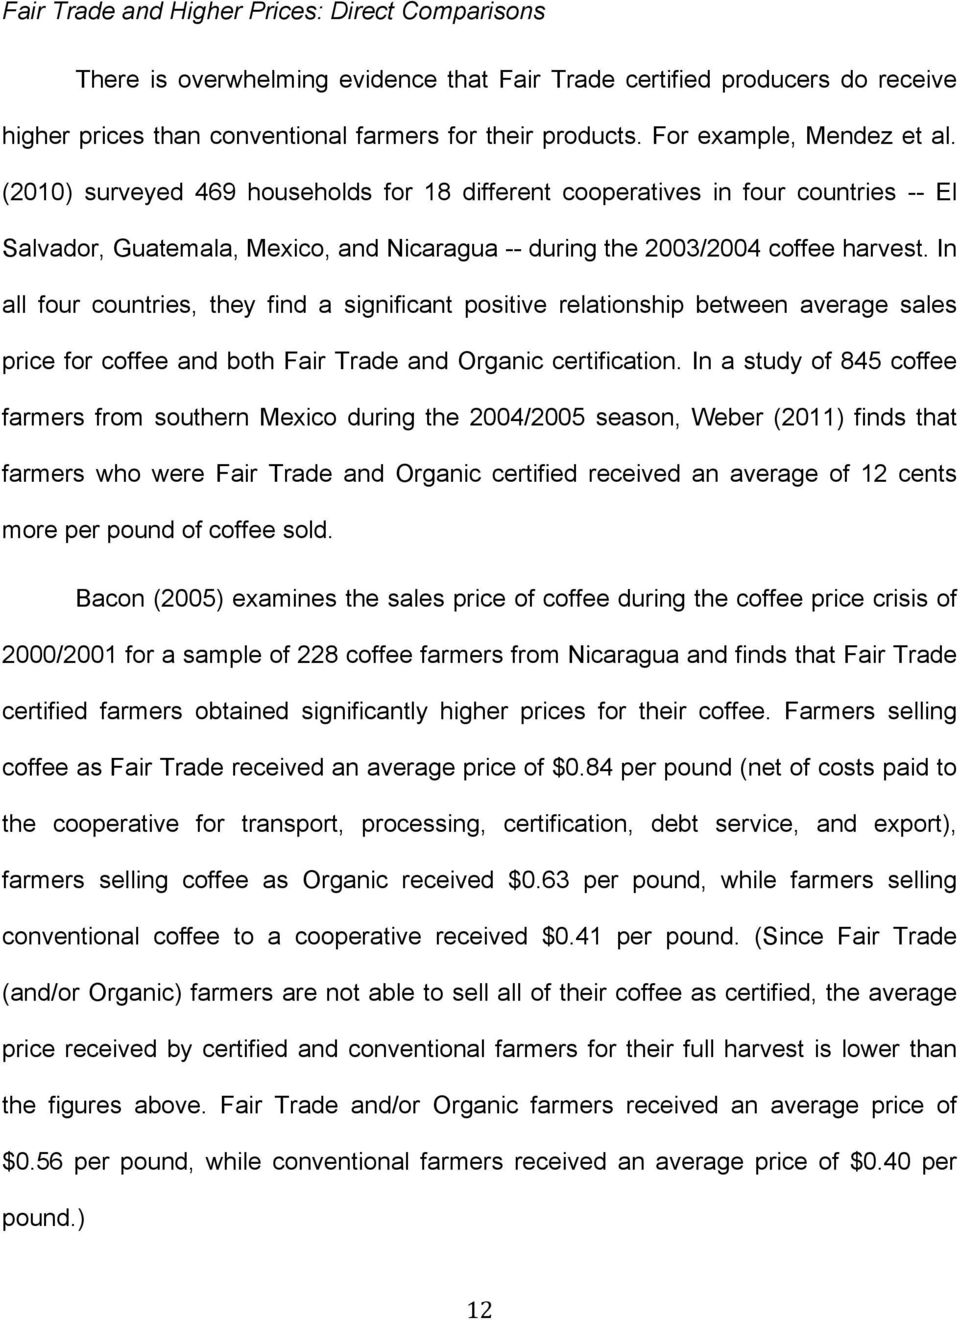 In all four countries, they find a significant positive relationship between average sales price for coffee and both Fair Trade and Organic certification.